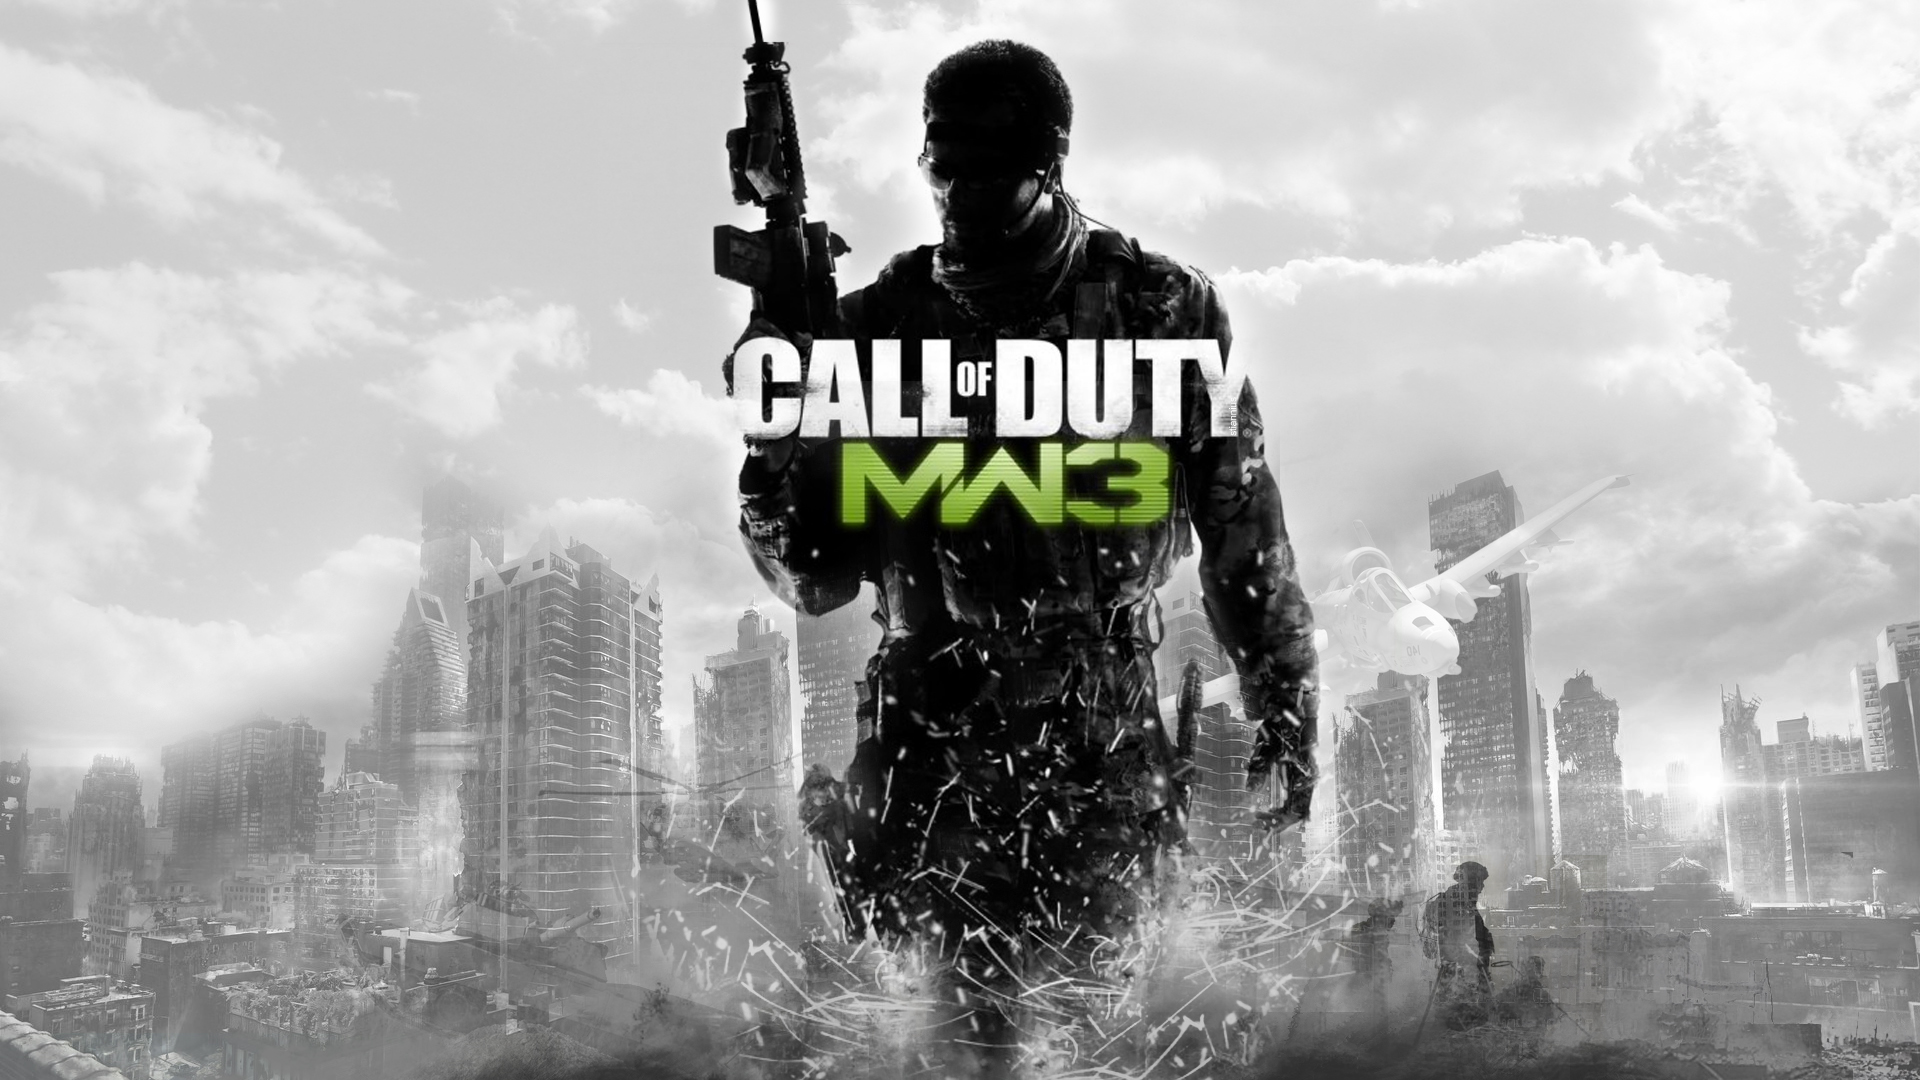 MW3 Wallpapers Call of Duty MW3 Myspace Backgrounds Call of Duty MW3 1920x1080